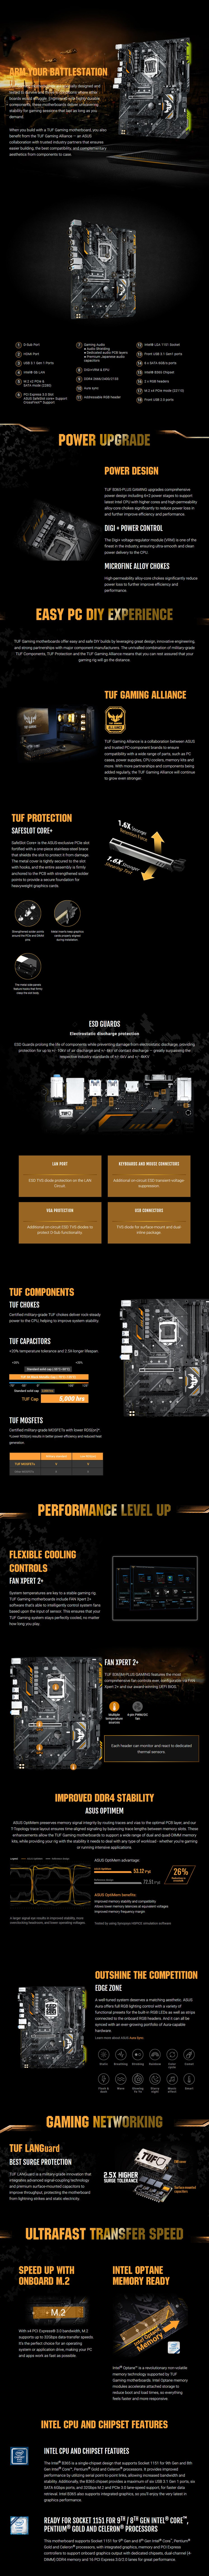 ASUS TUF B365-PLUS GAMING LGA 1151 ATX Motherboard - Overview 2